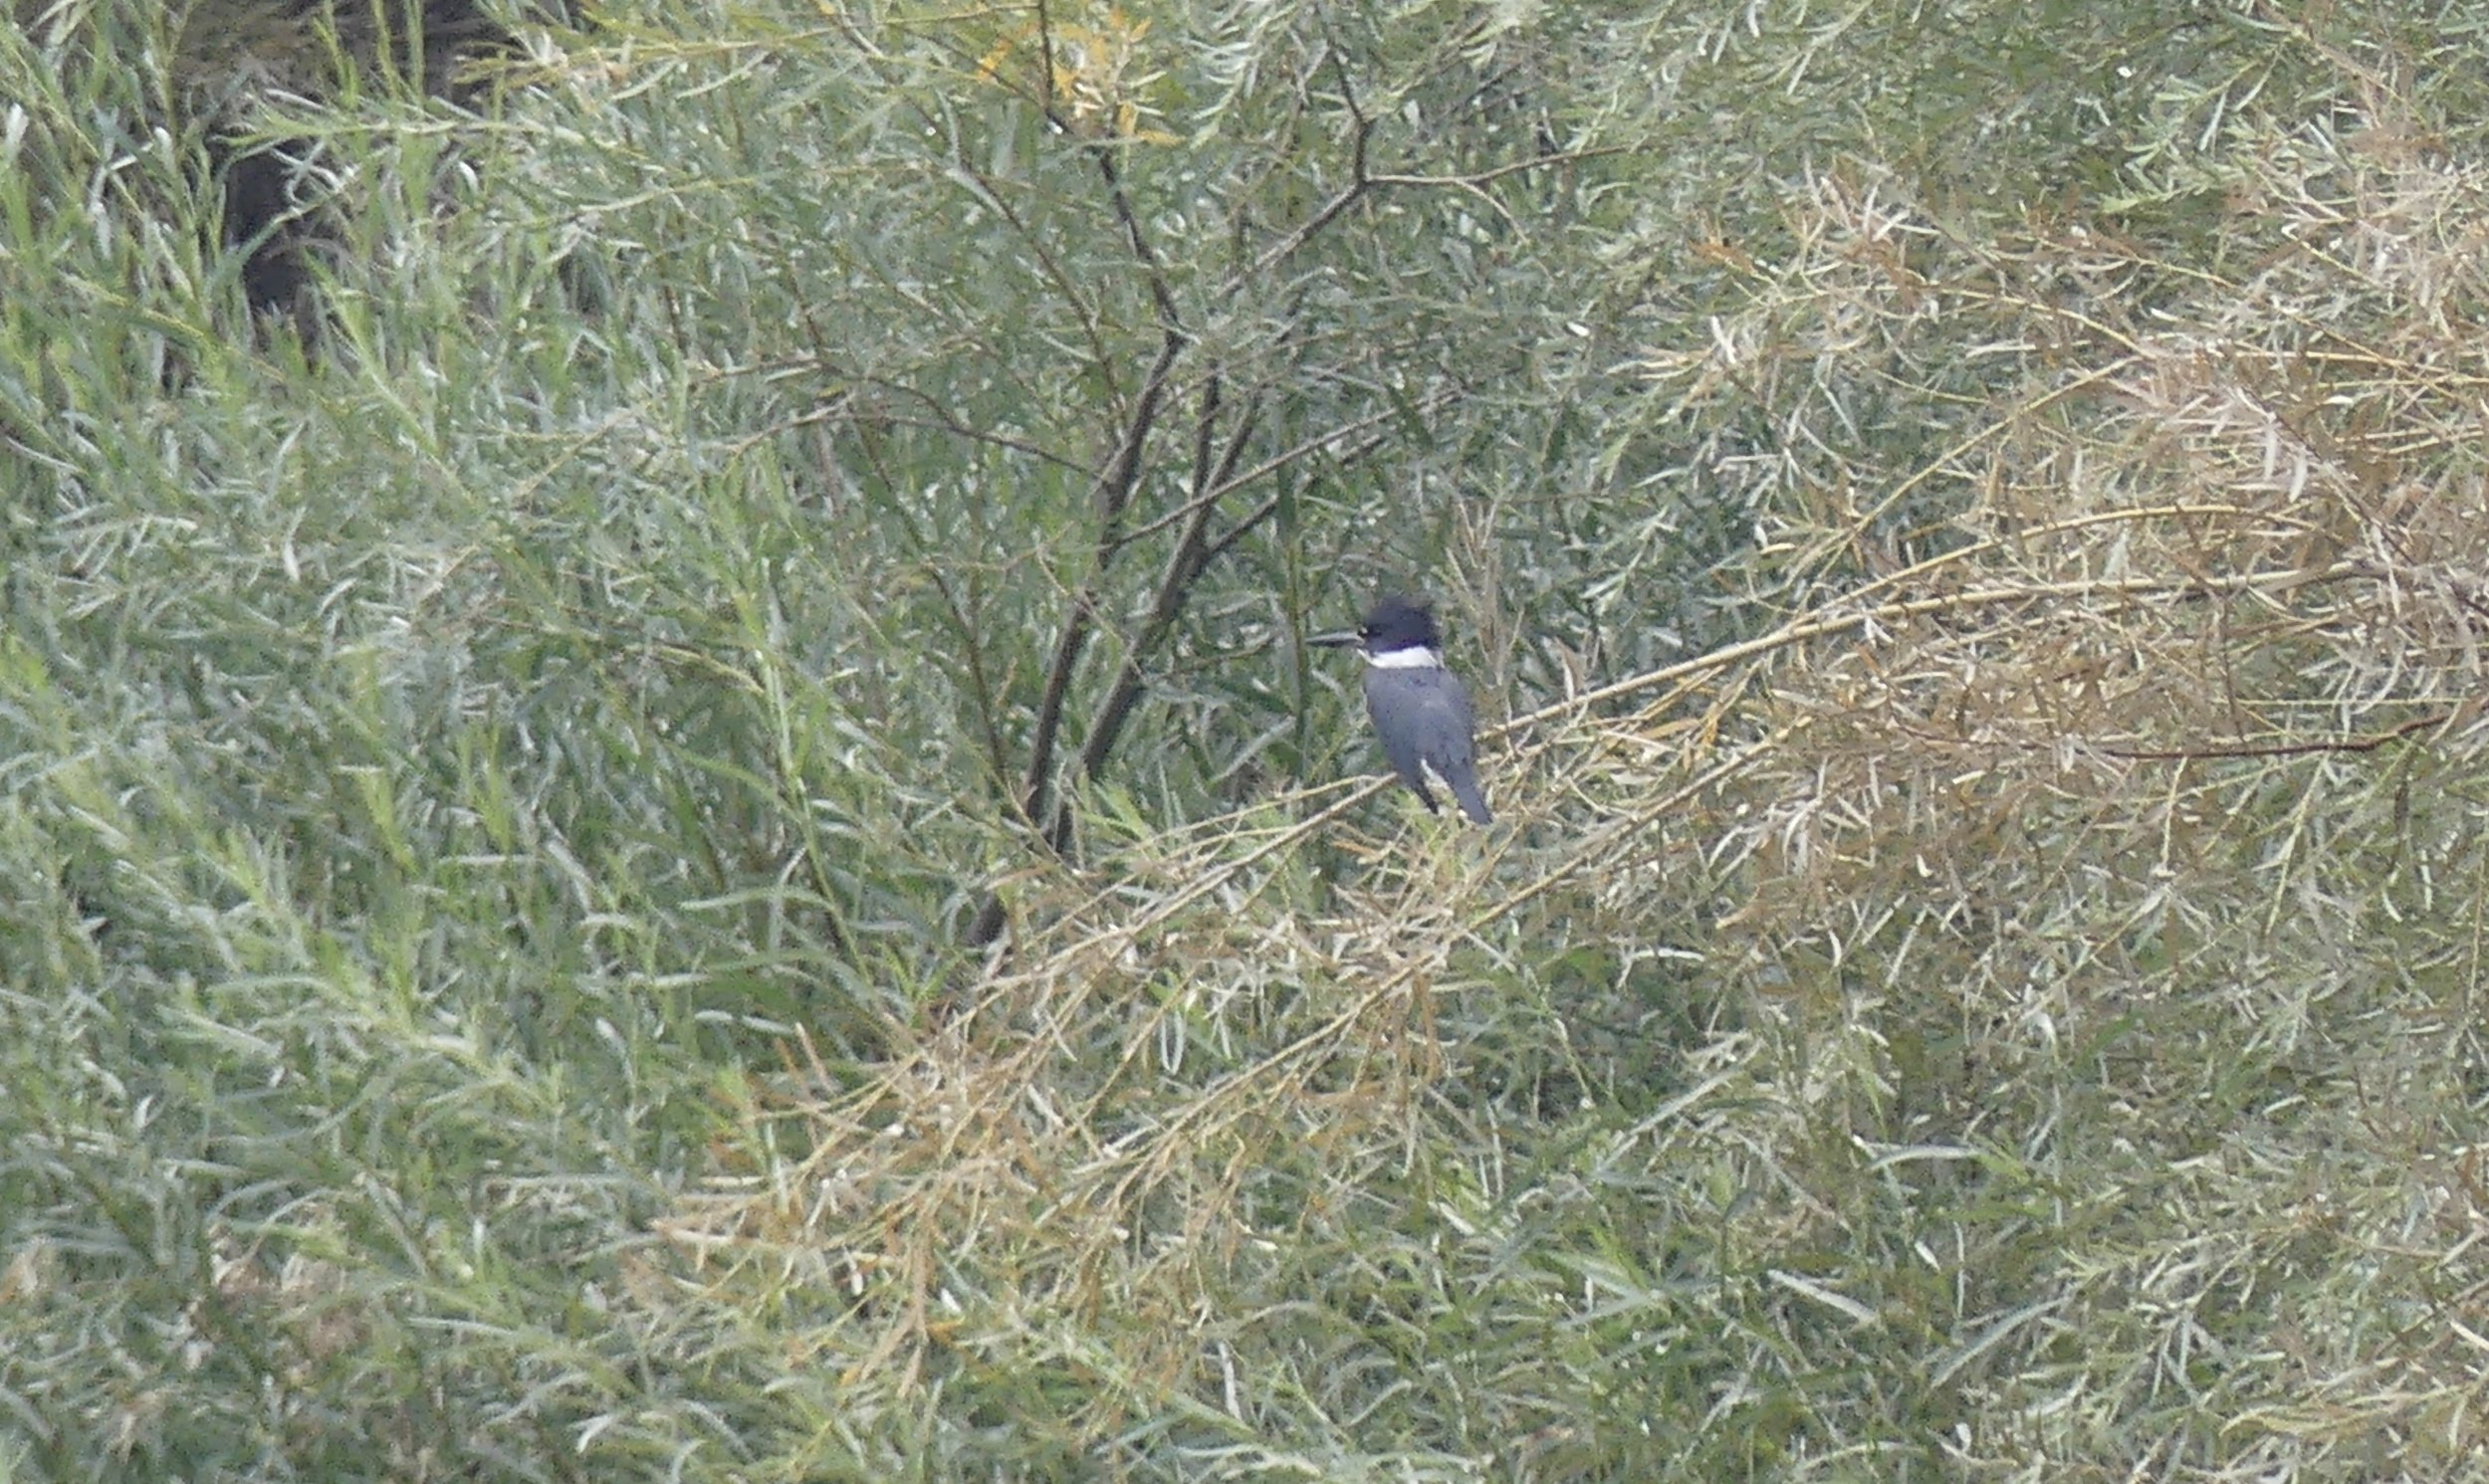 A Belted Kingfisher (I think) in the John Day River valley